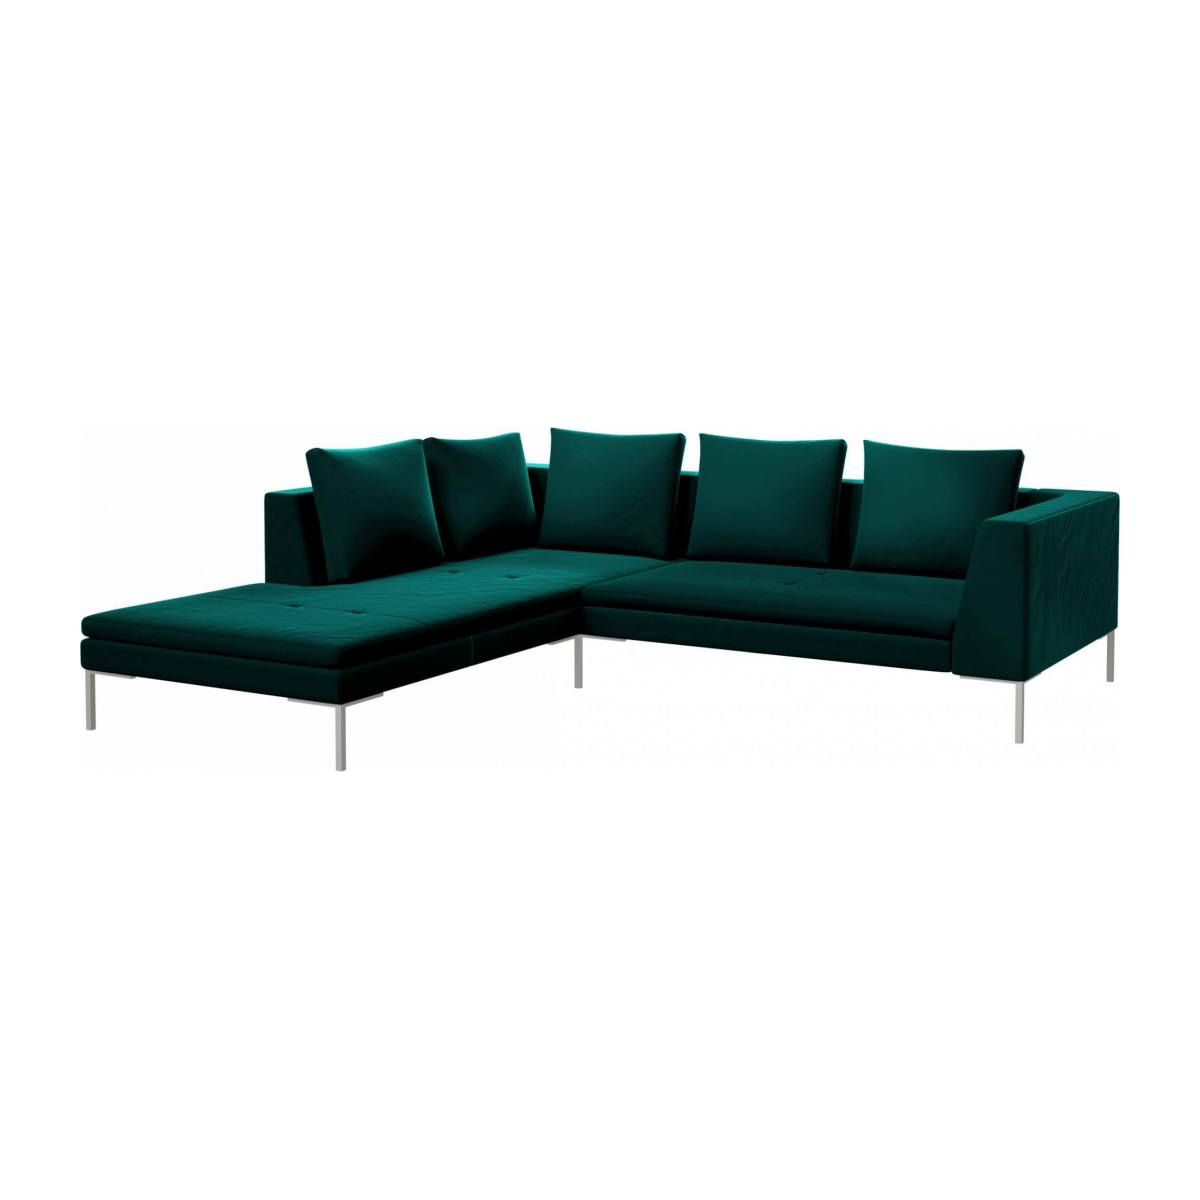 2 seater sofa with chaise longue on the left in Super Velvet fabric, petrol blue  n°2